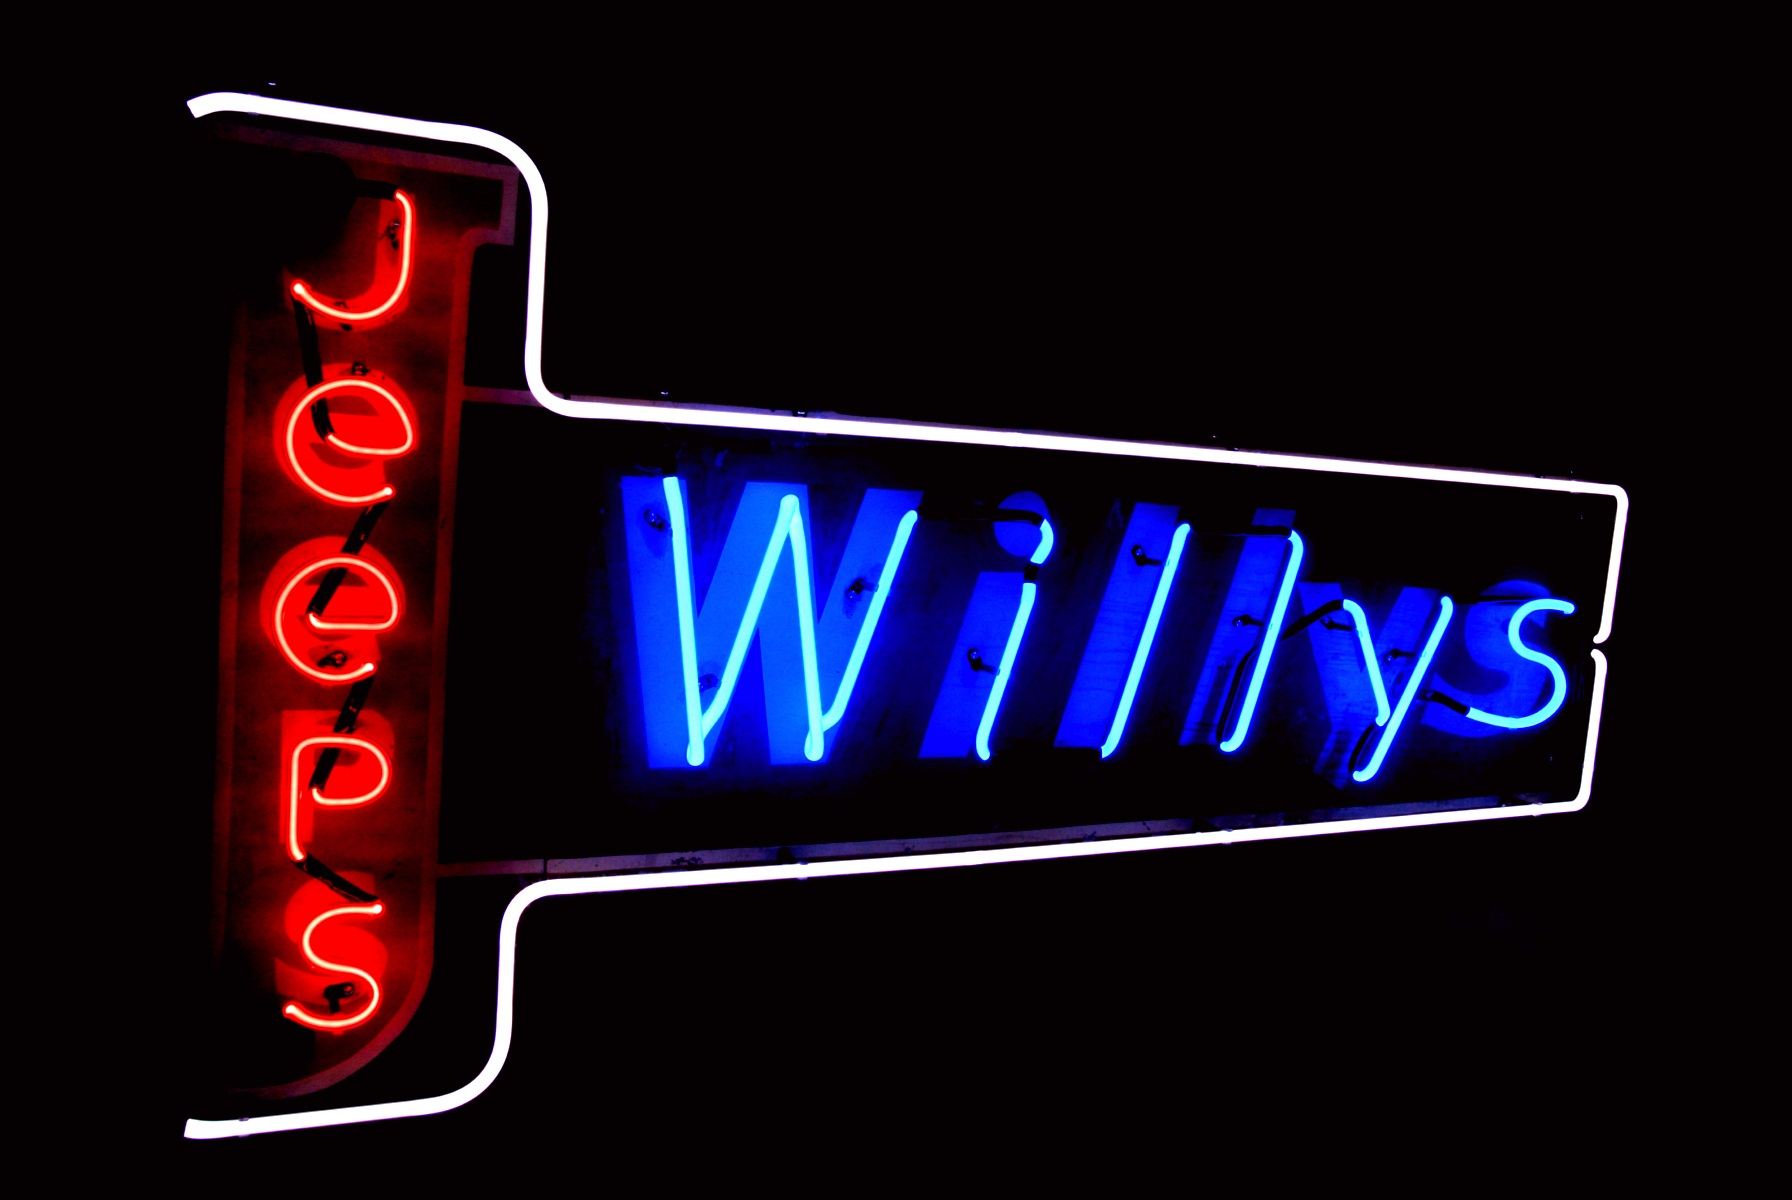 Willys Jeeps Neon Sign Restoration by John Barton